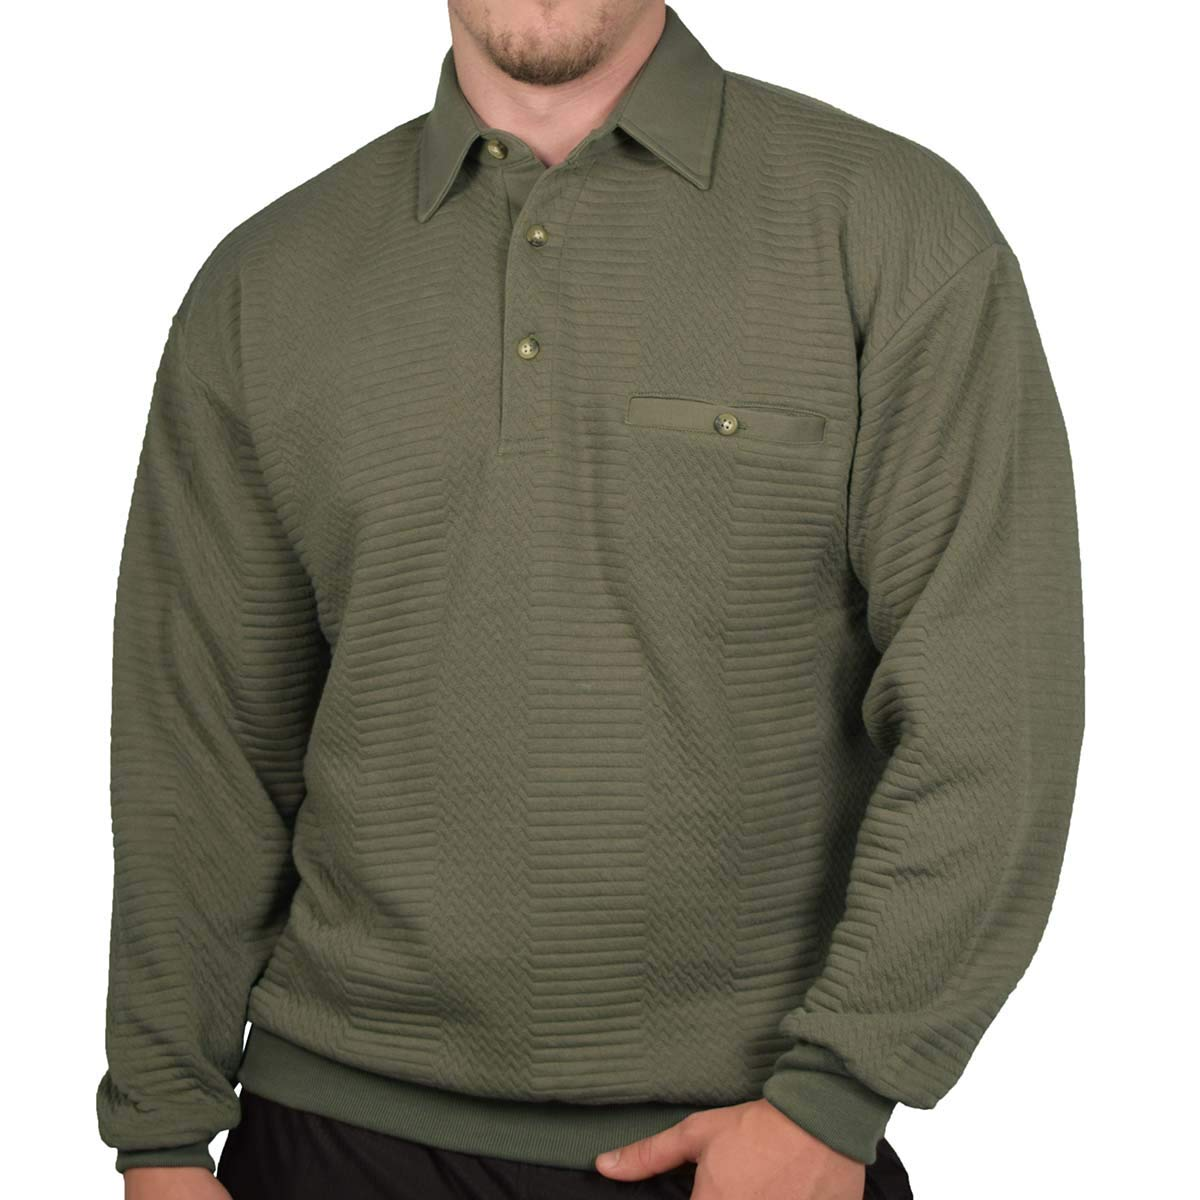 Palmland L//S Solid Textured Banded Bottom Shirt 6094-950 Big and Tall